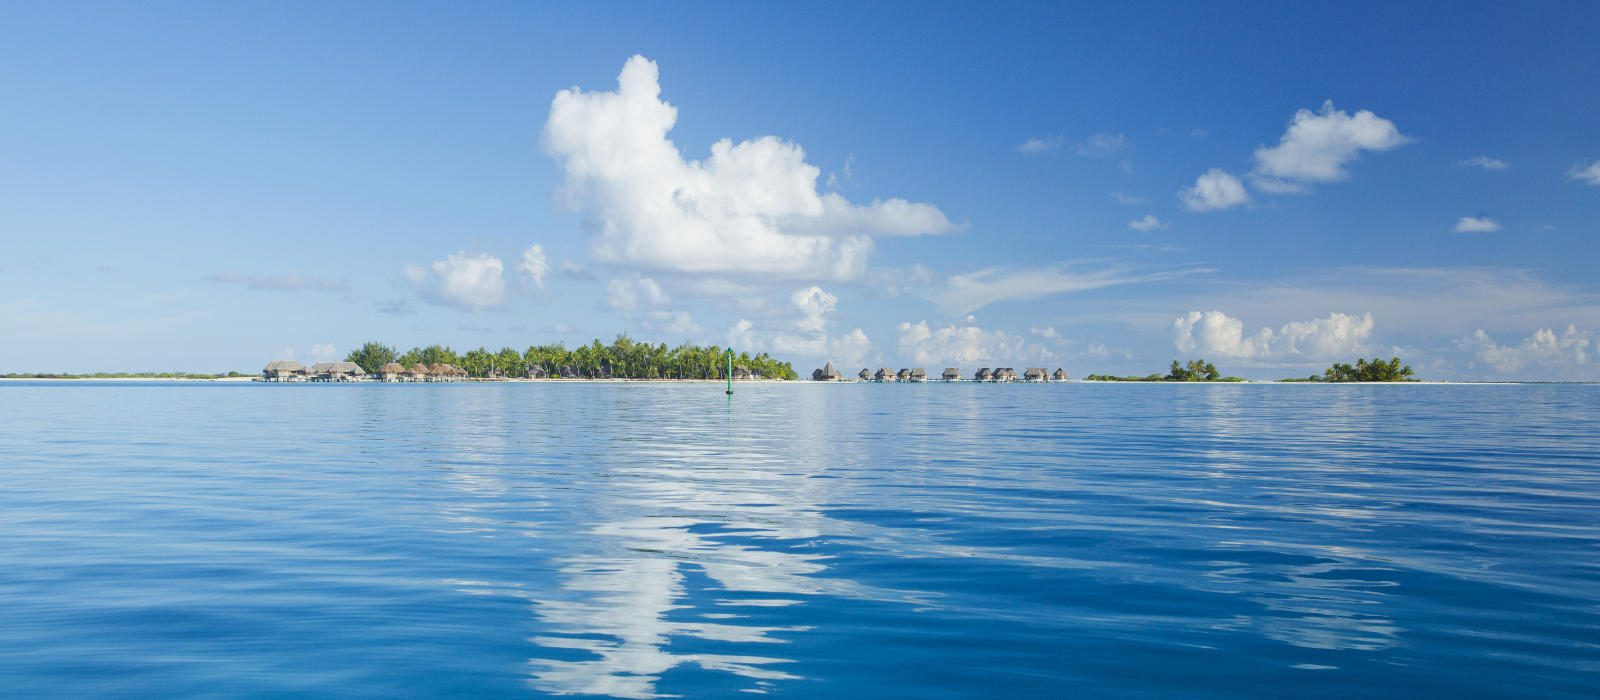 exclusive deals & special offer for your trip to French Polynesia